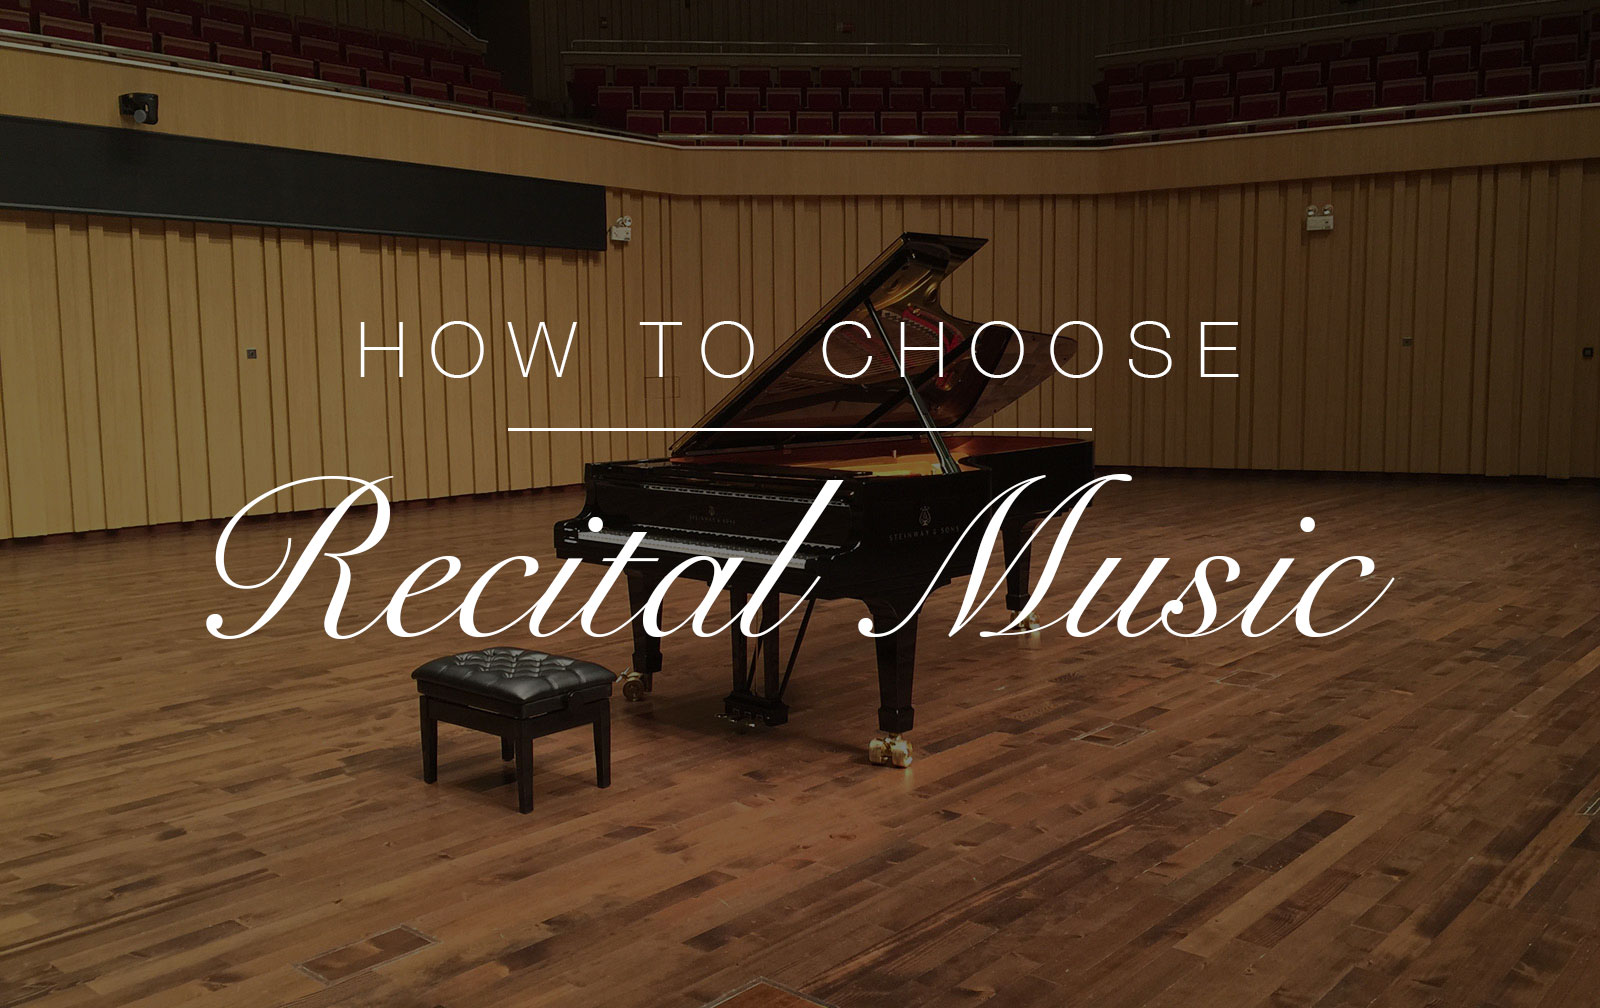 How To Choose Recital Music